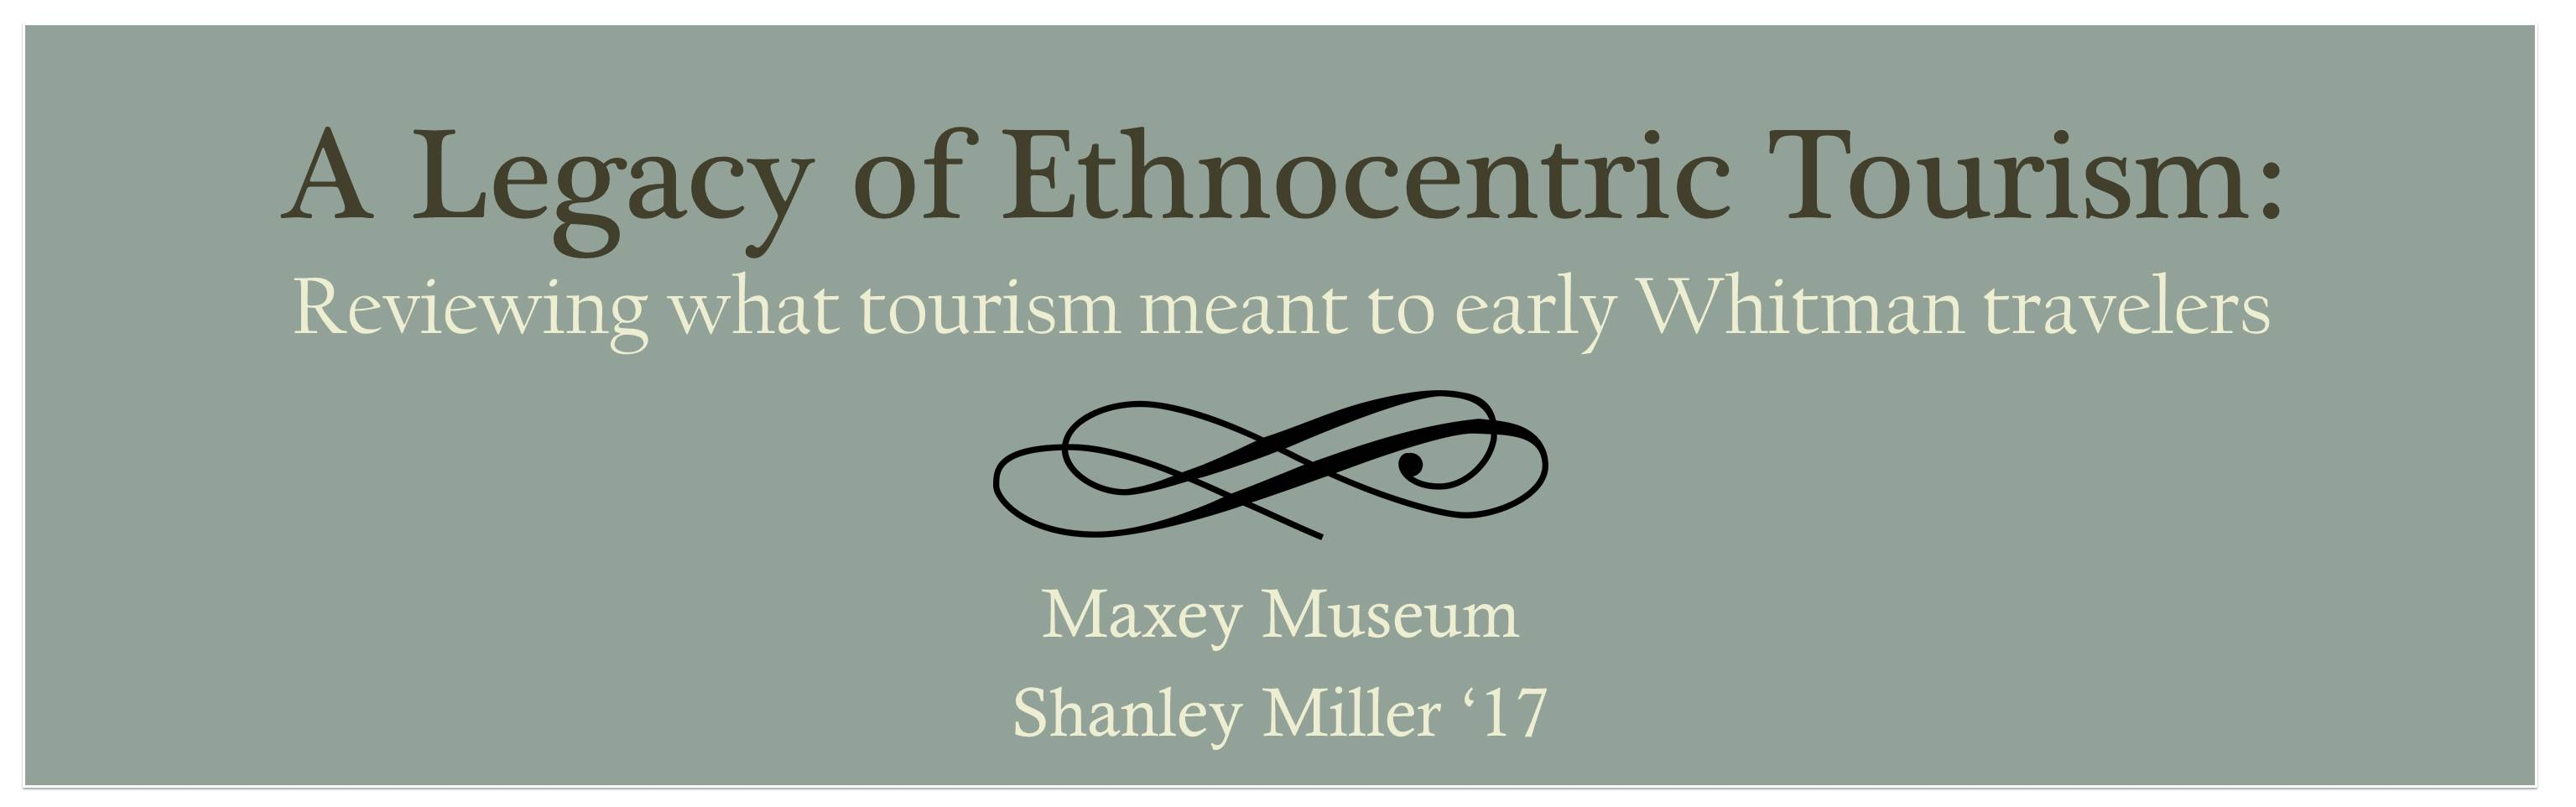 A Legacy of Ethnocentric Tourism Cover Photo